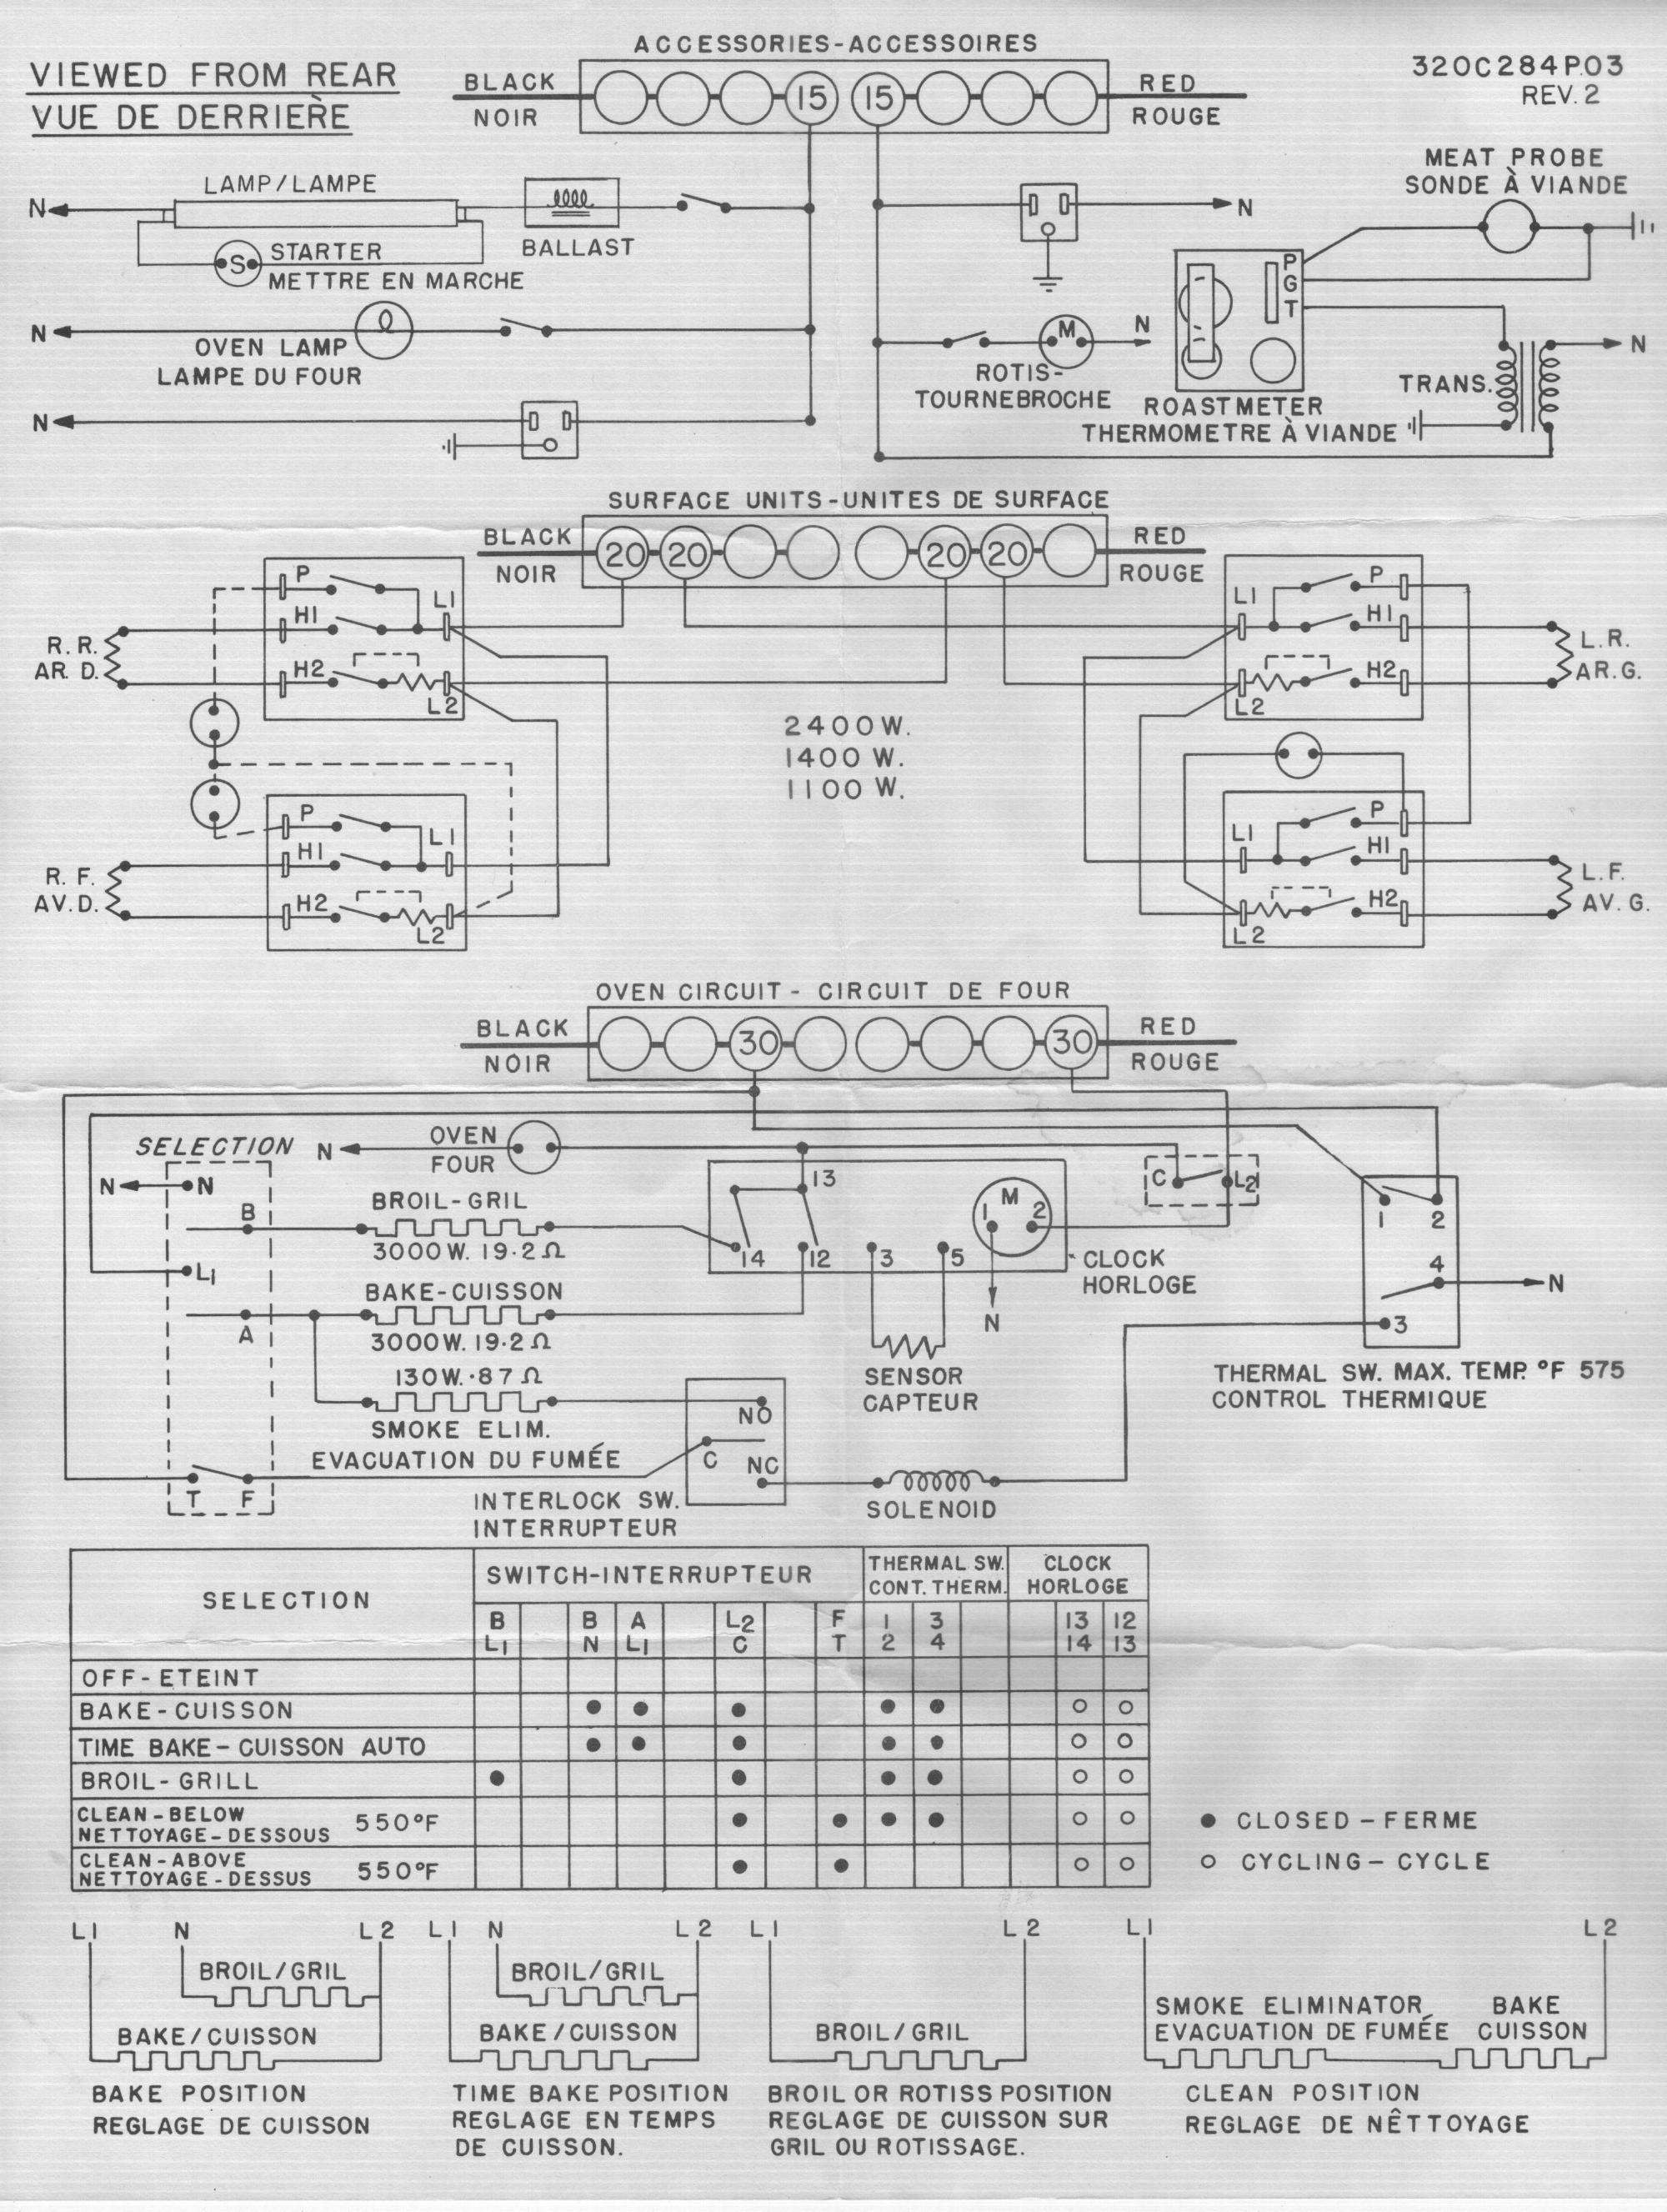 Frigidaire Stove Wiring Diagram Frigidaire Electric Range Wiring